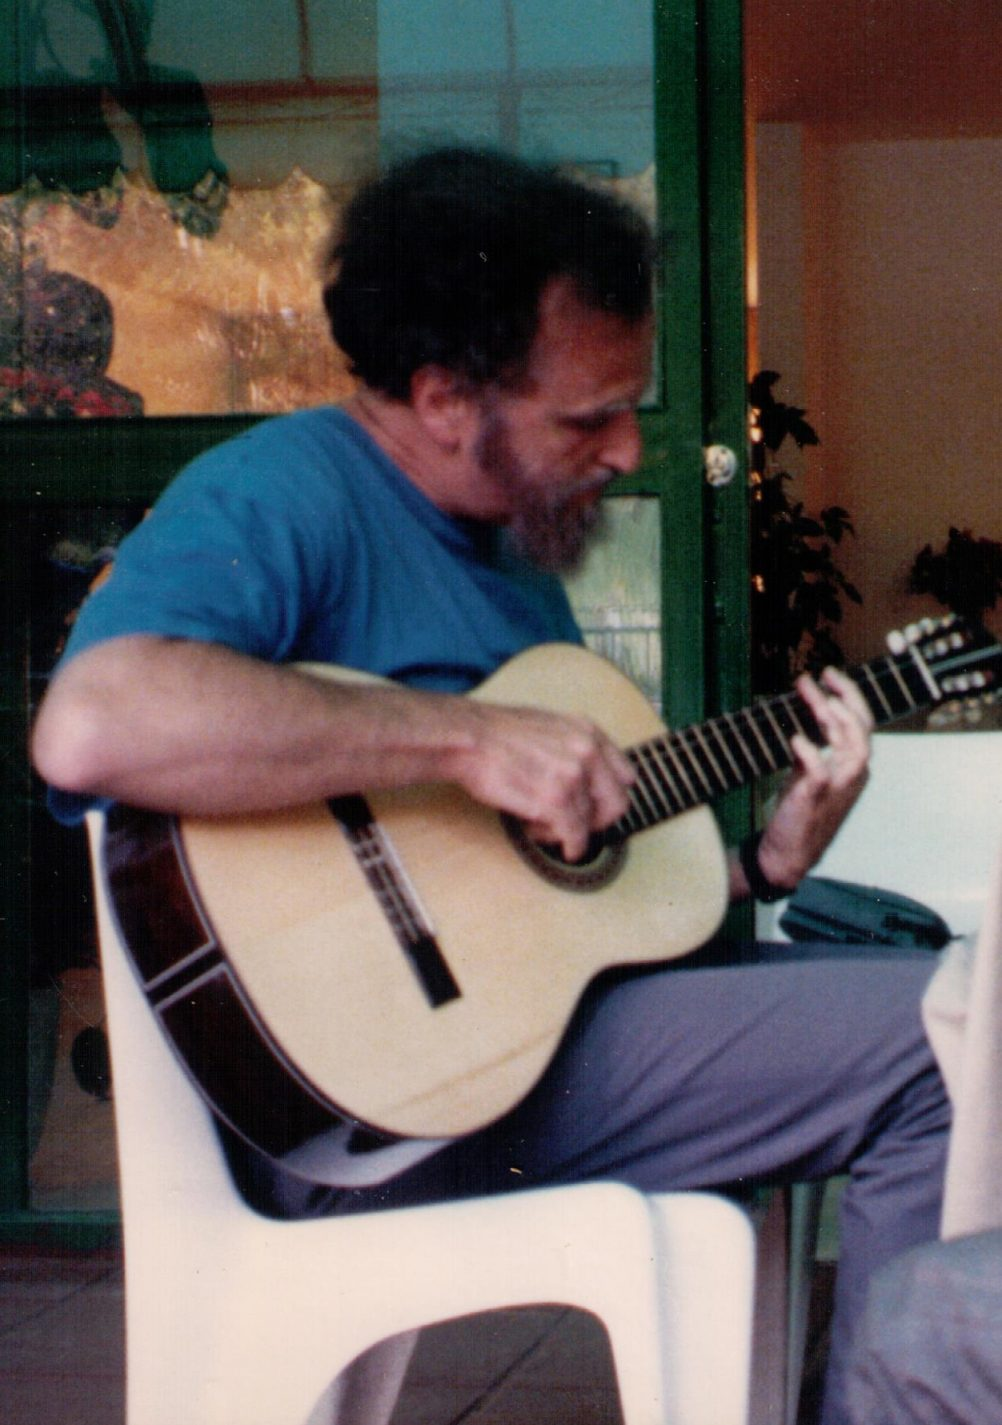 Lionel Chernoff playing the guitar in Brazil.